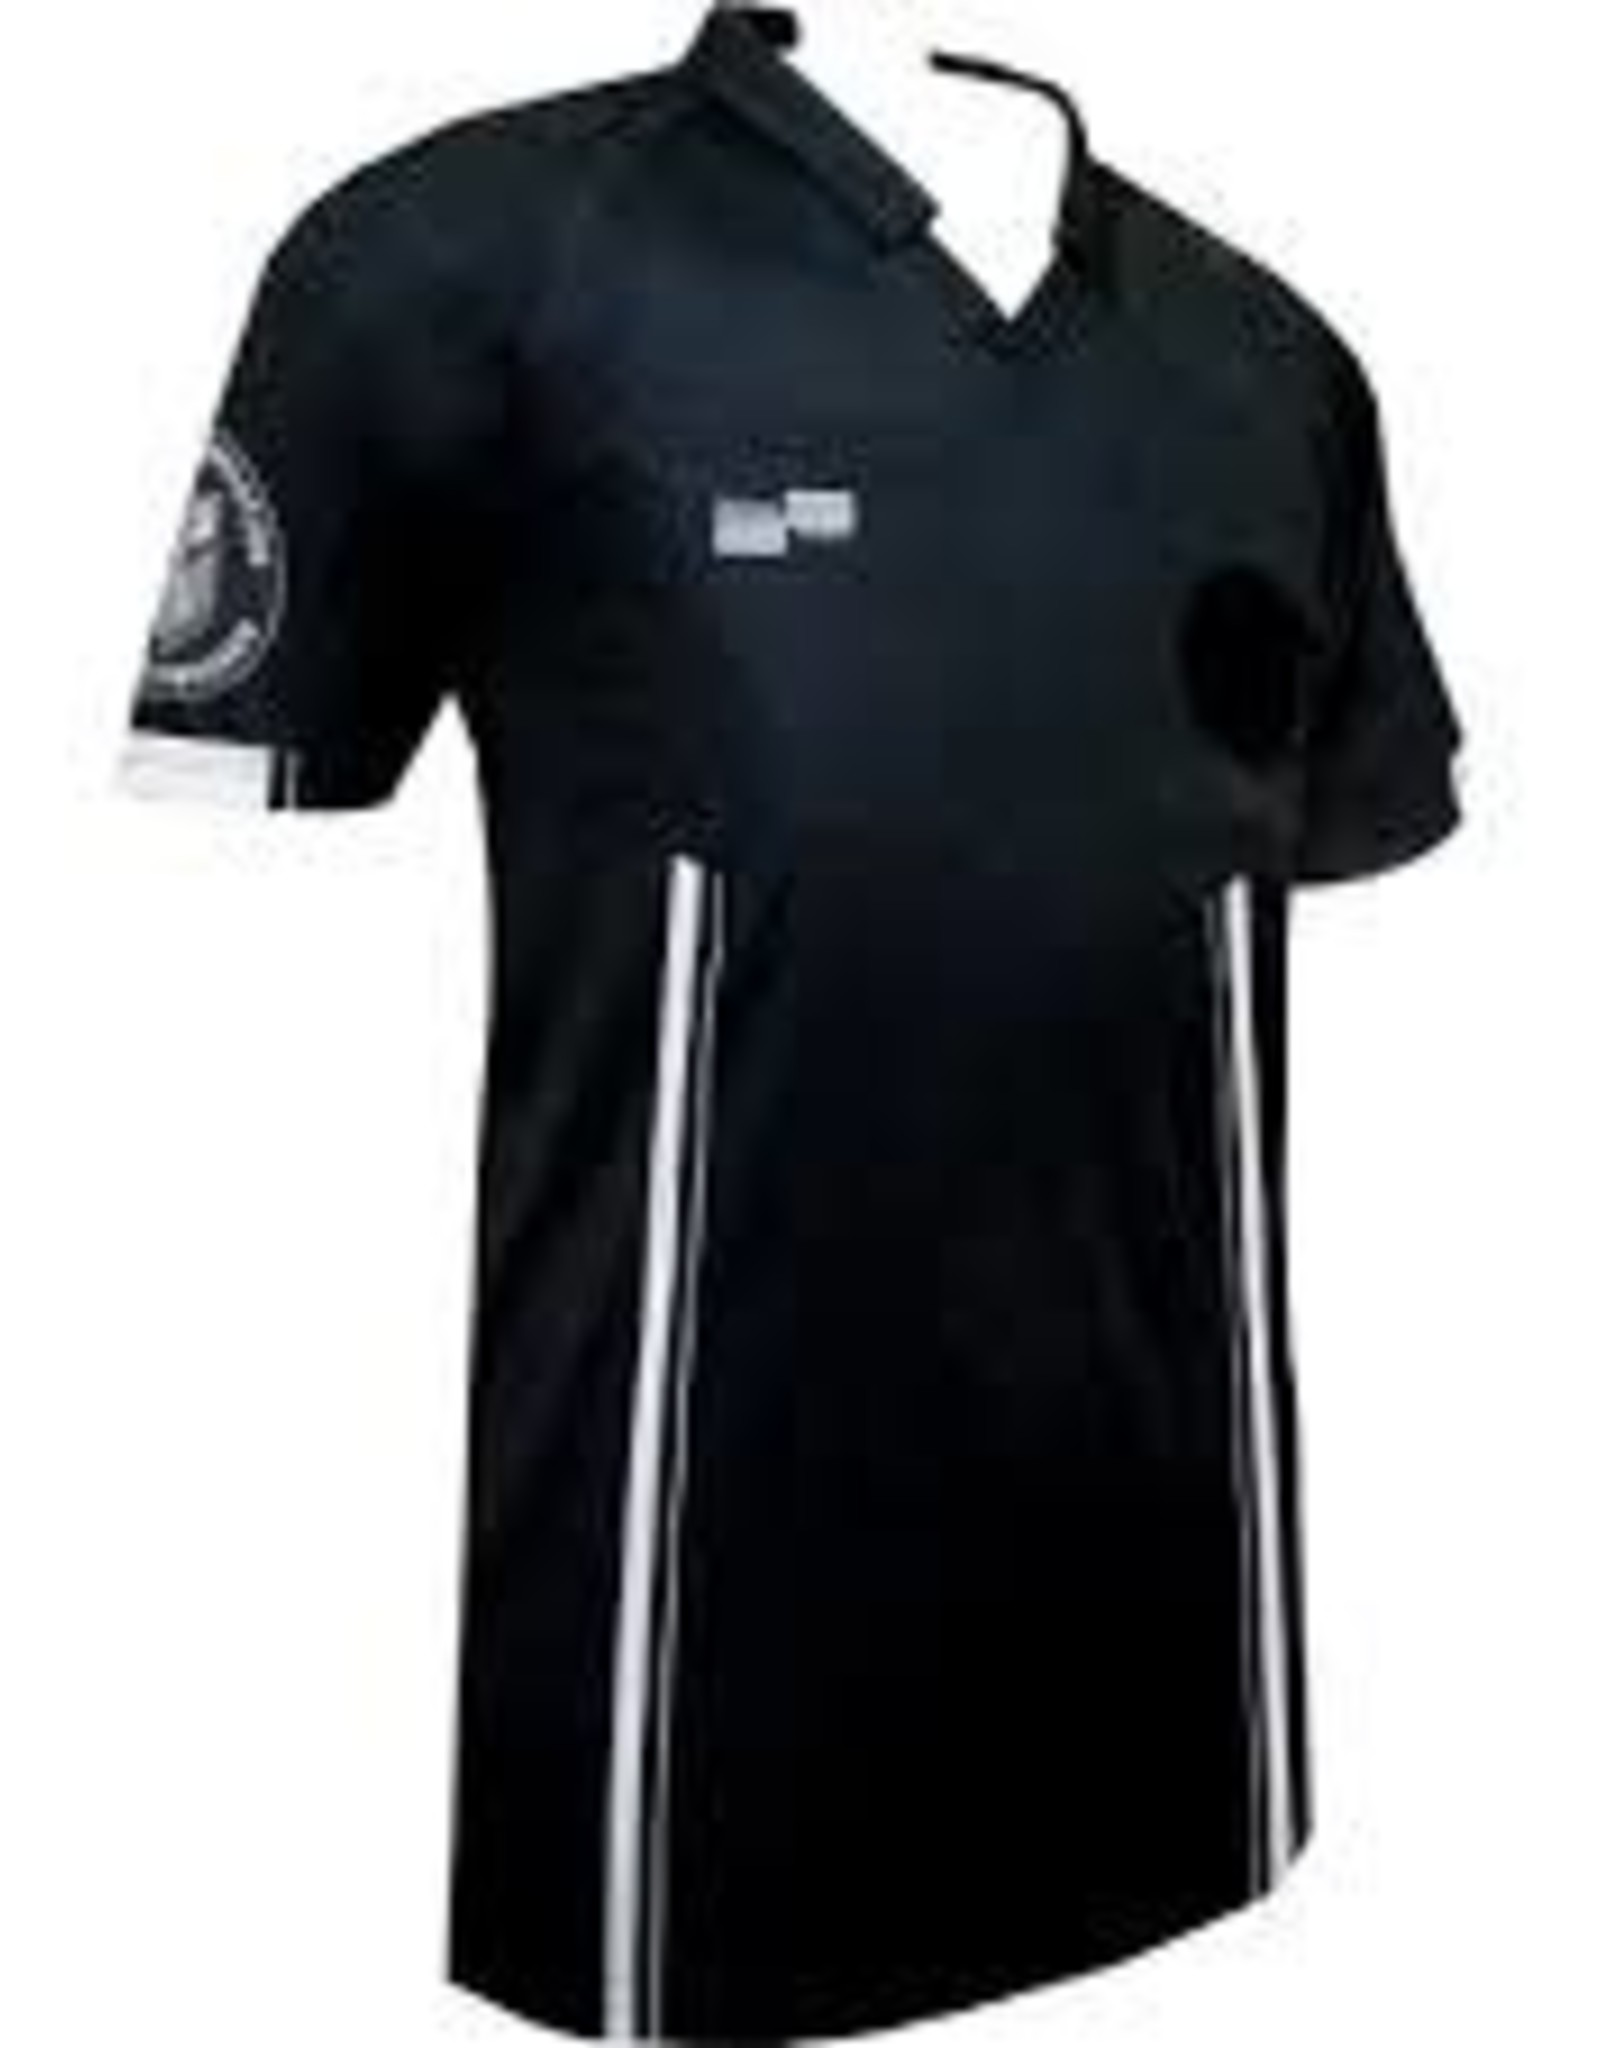 Official Sports Official Sports Economy Short-Sleeve Shirt